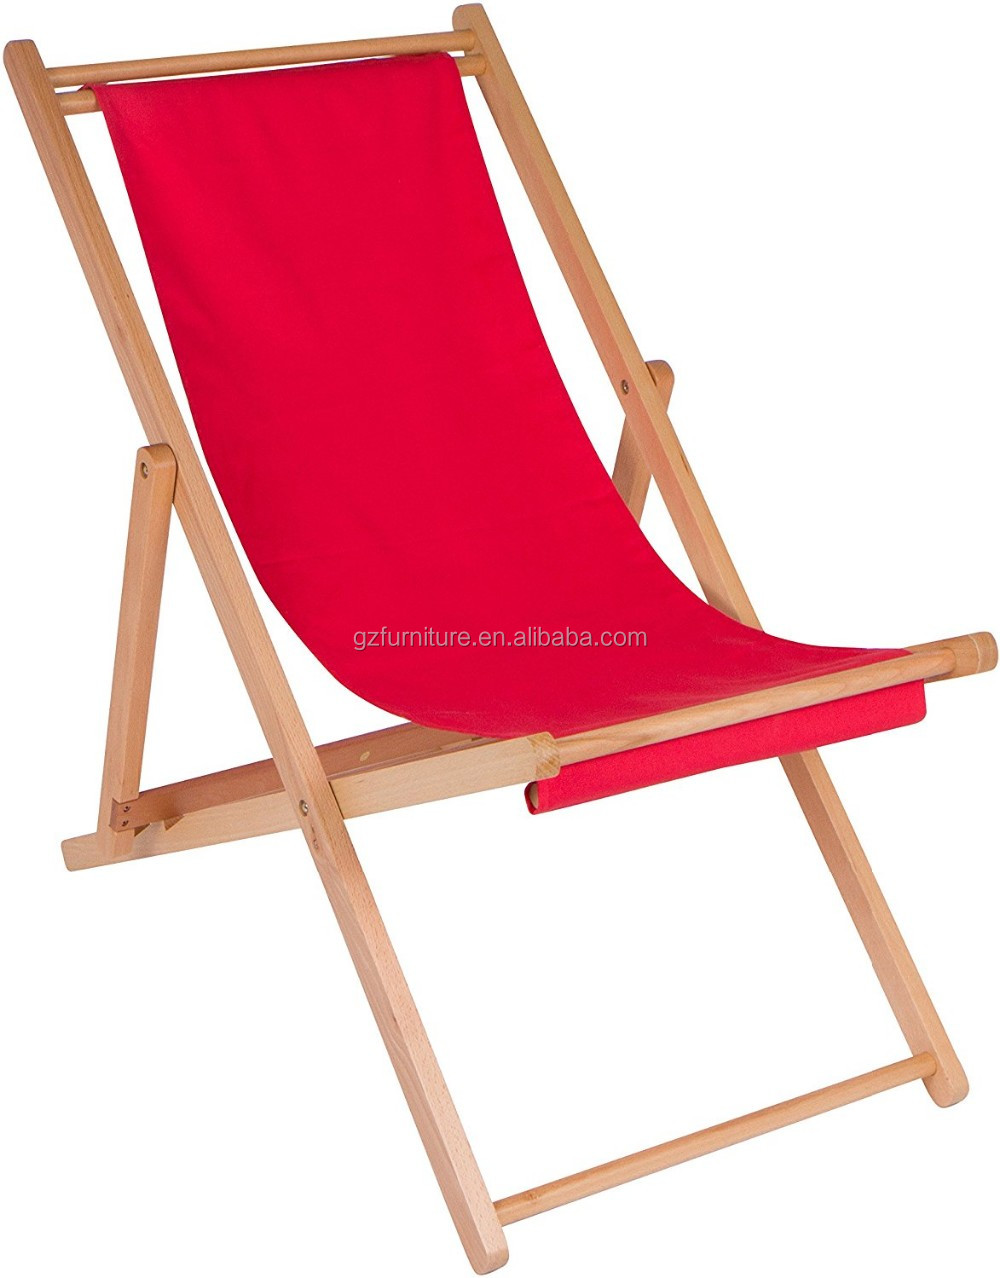 Folding Sling Chair Folding Sling Chair Suppliers and – Sling Folding Chair